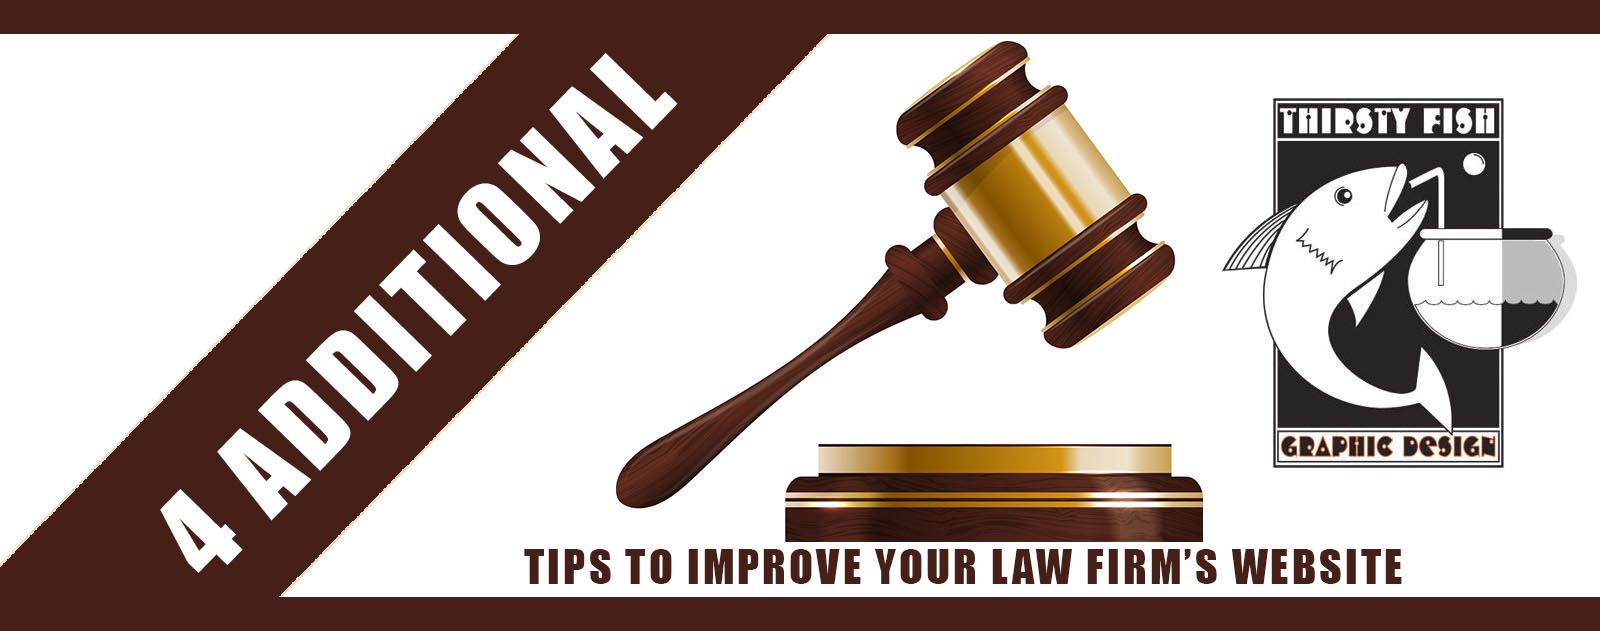 Improve Your Law Firm's Online Presence - Thirsty Fish Graphic Design